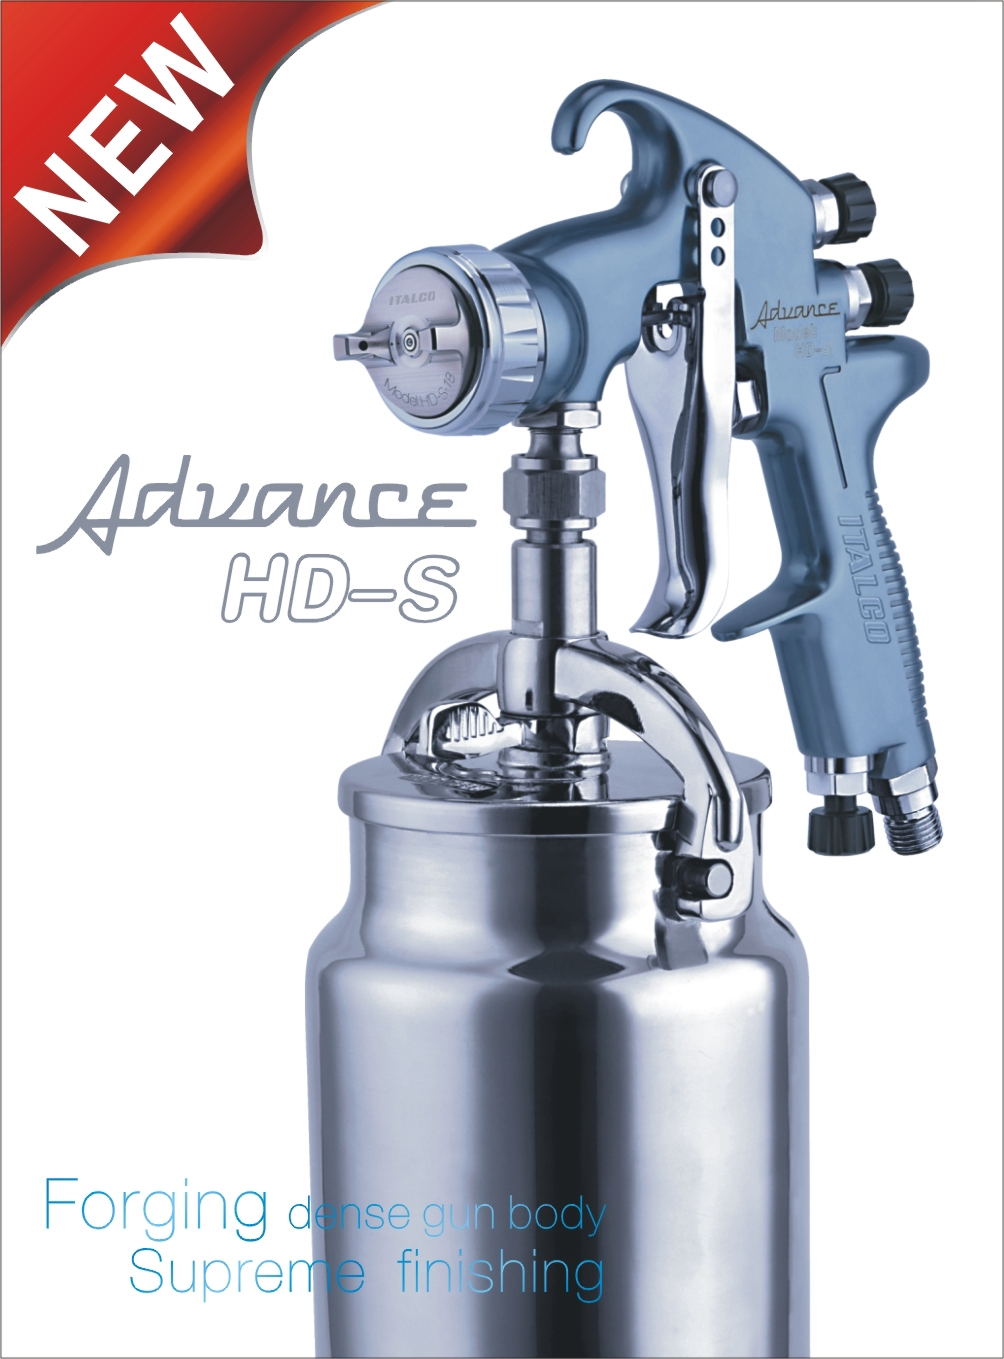 Advance-Hd-s  SPRAY GUN